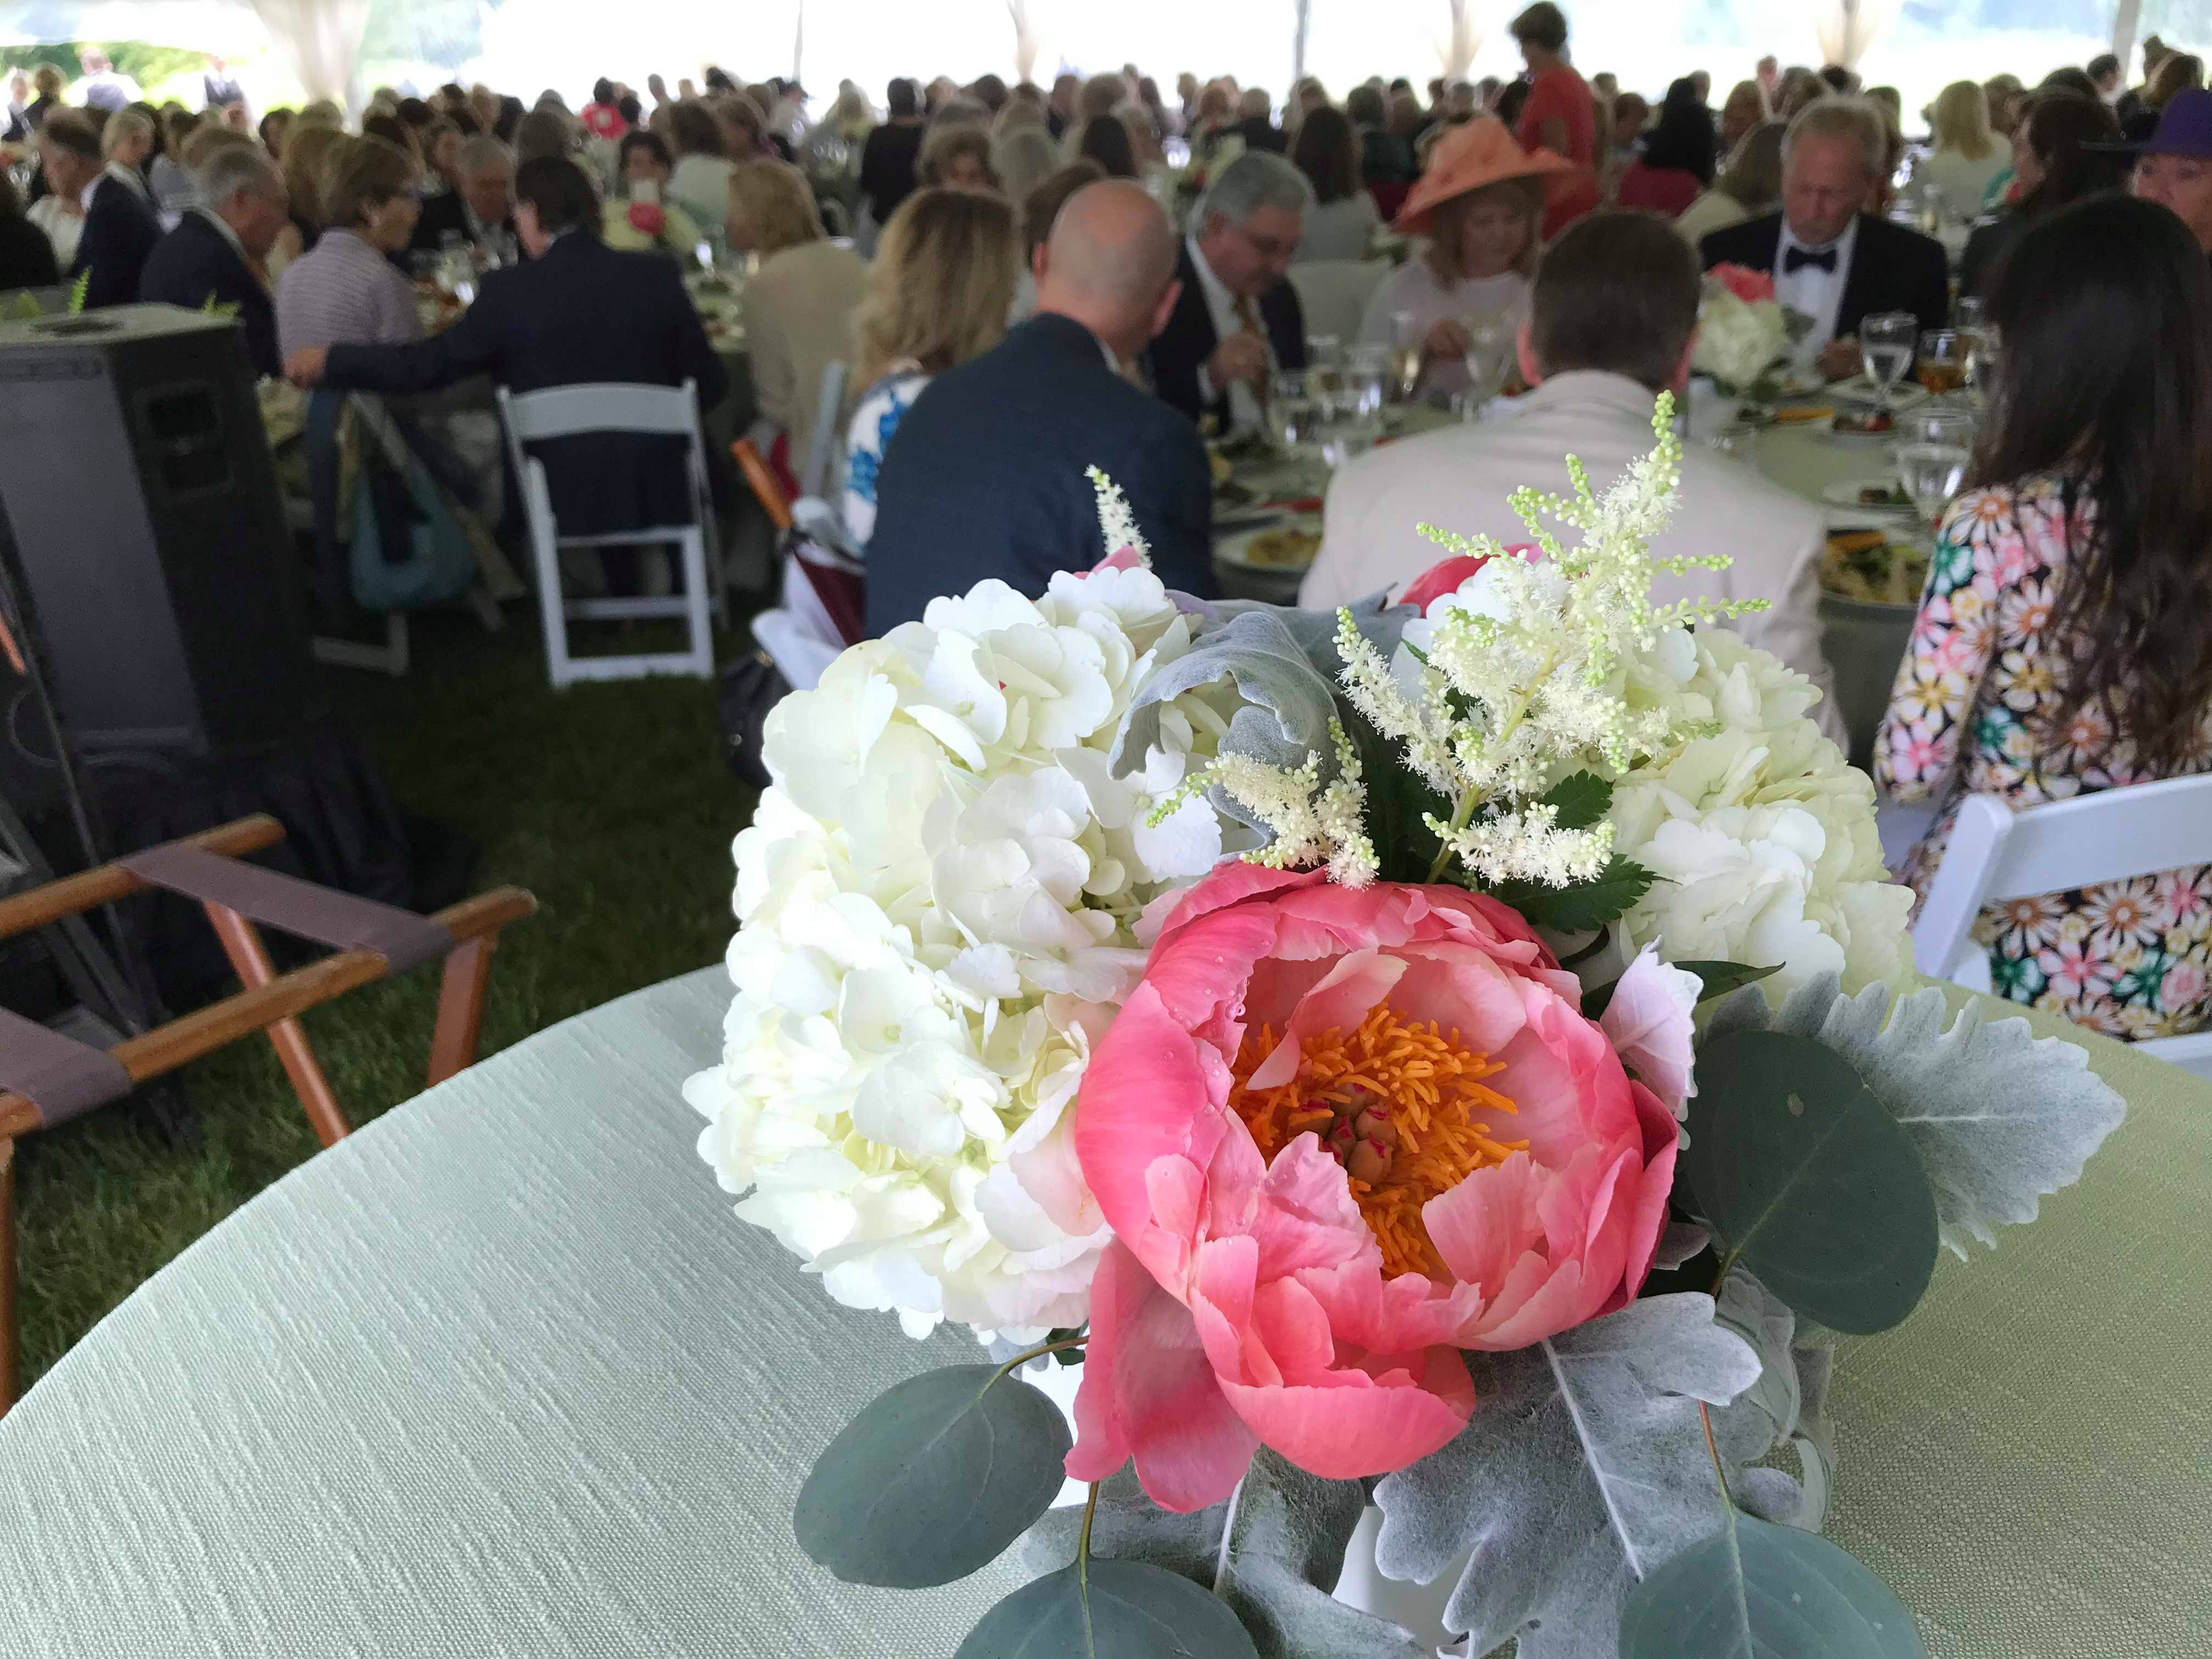 Attendees of the Spring Outing event eat their meals while waiting for the keynote address on Wednesday at The Hermitage.